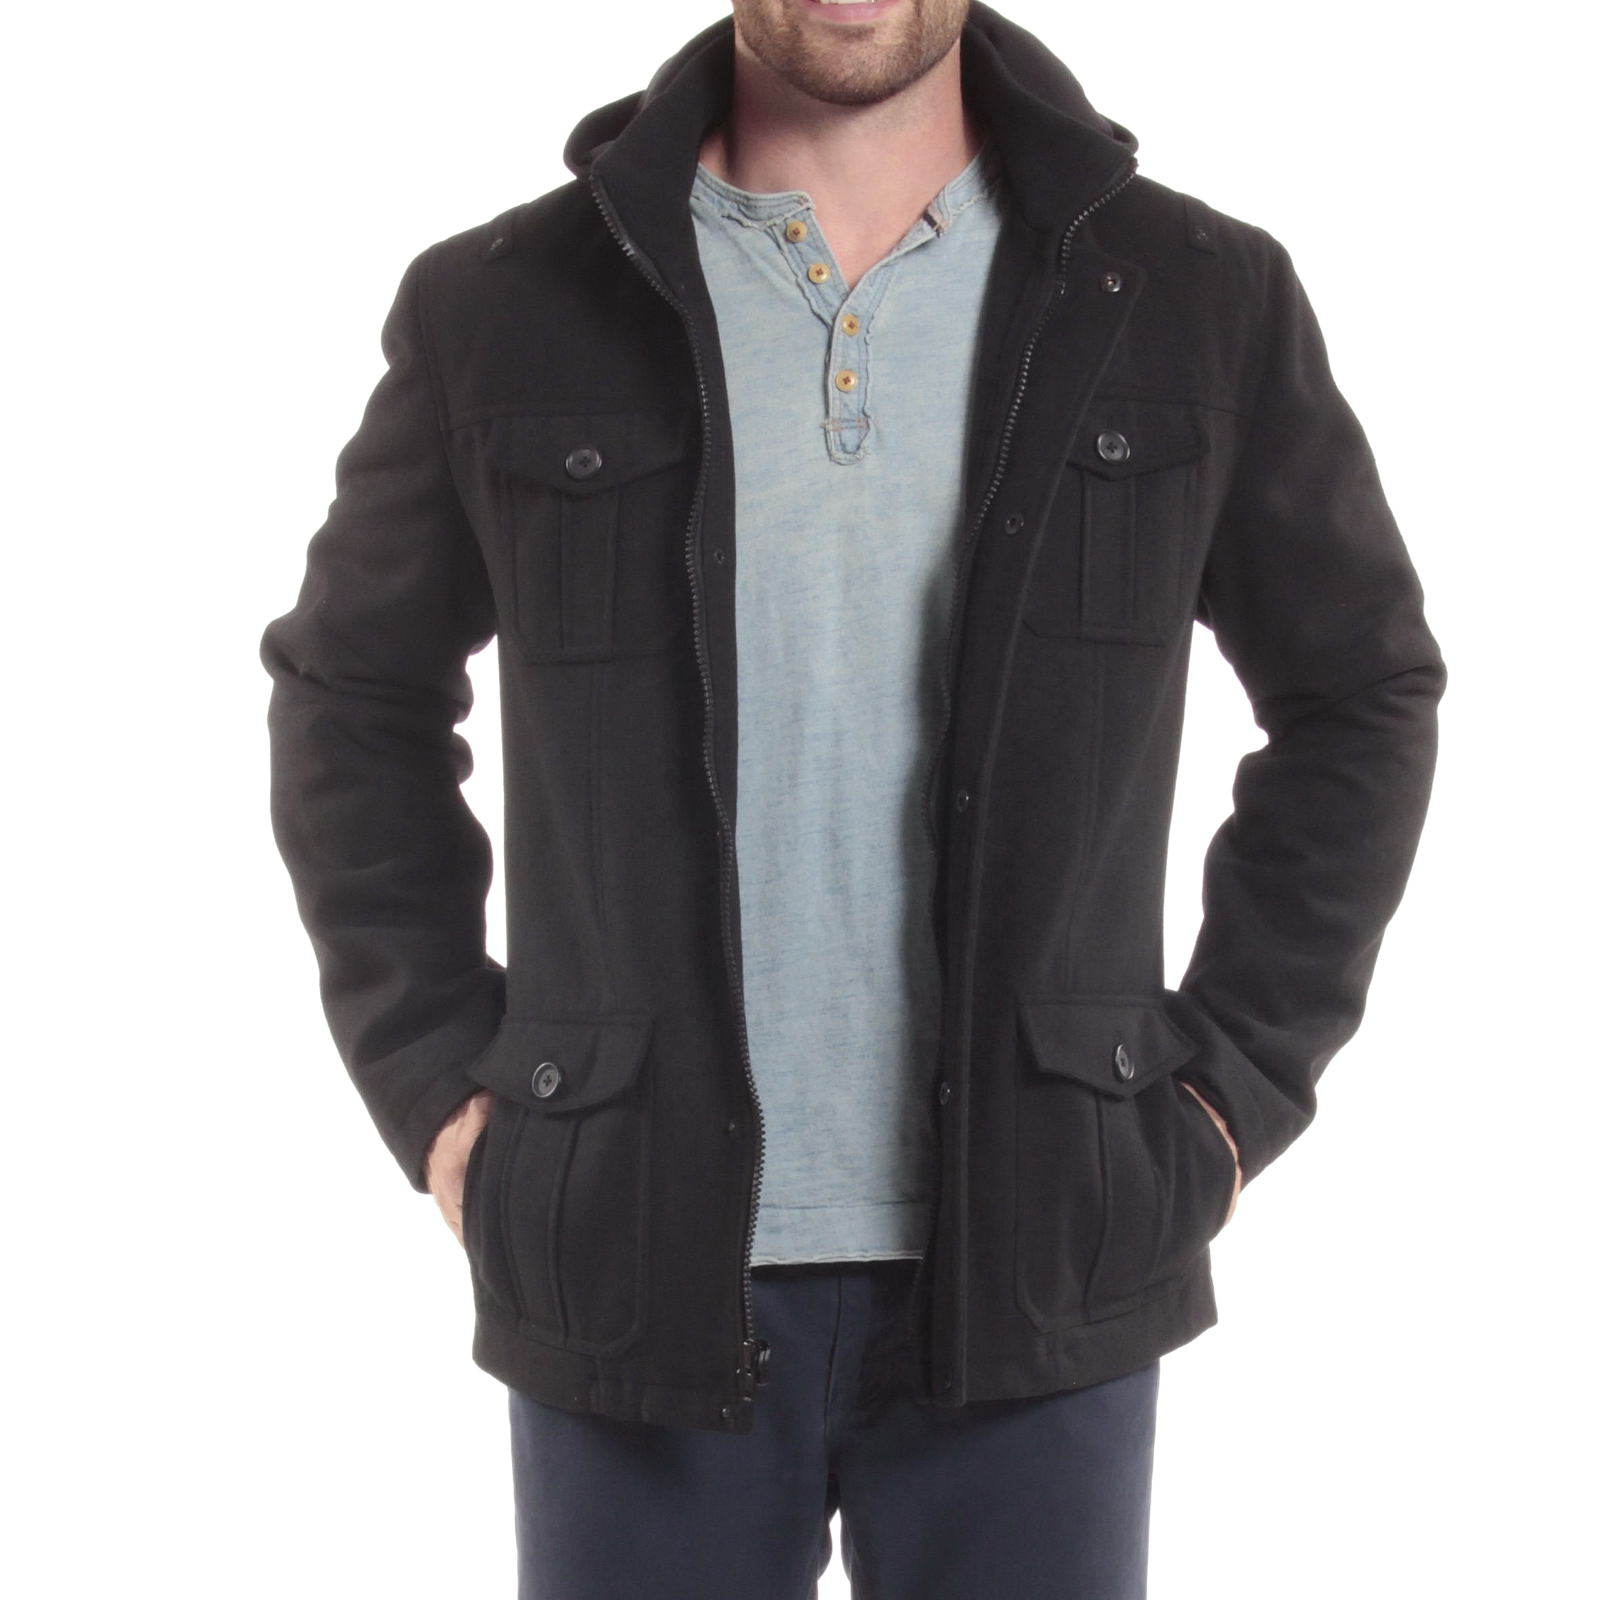 Alpine-Swiss-Noah-Mens-Wool-Coat-Parka-with-Removable-Hood-Jacket-Cargo-Pockets thumbnail 16